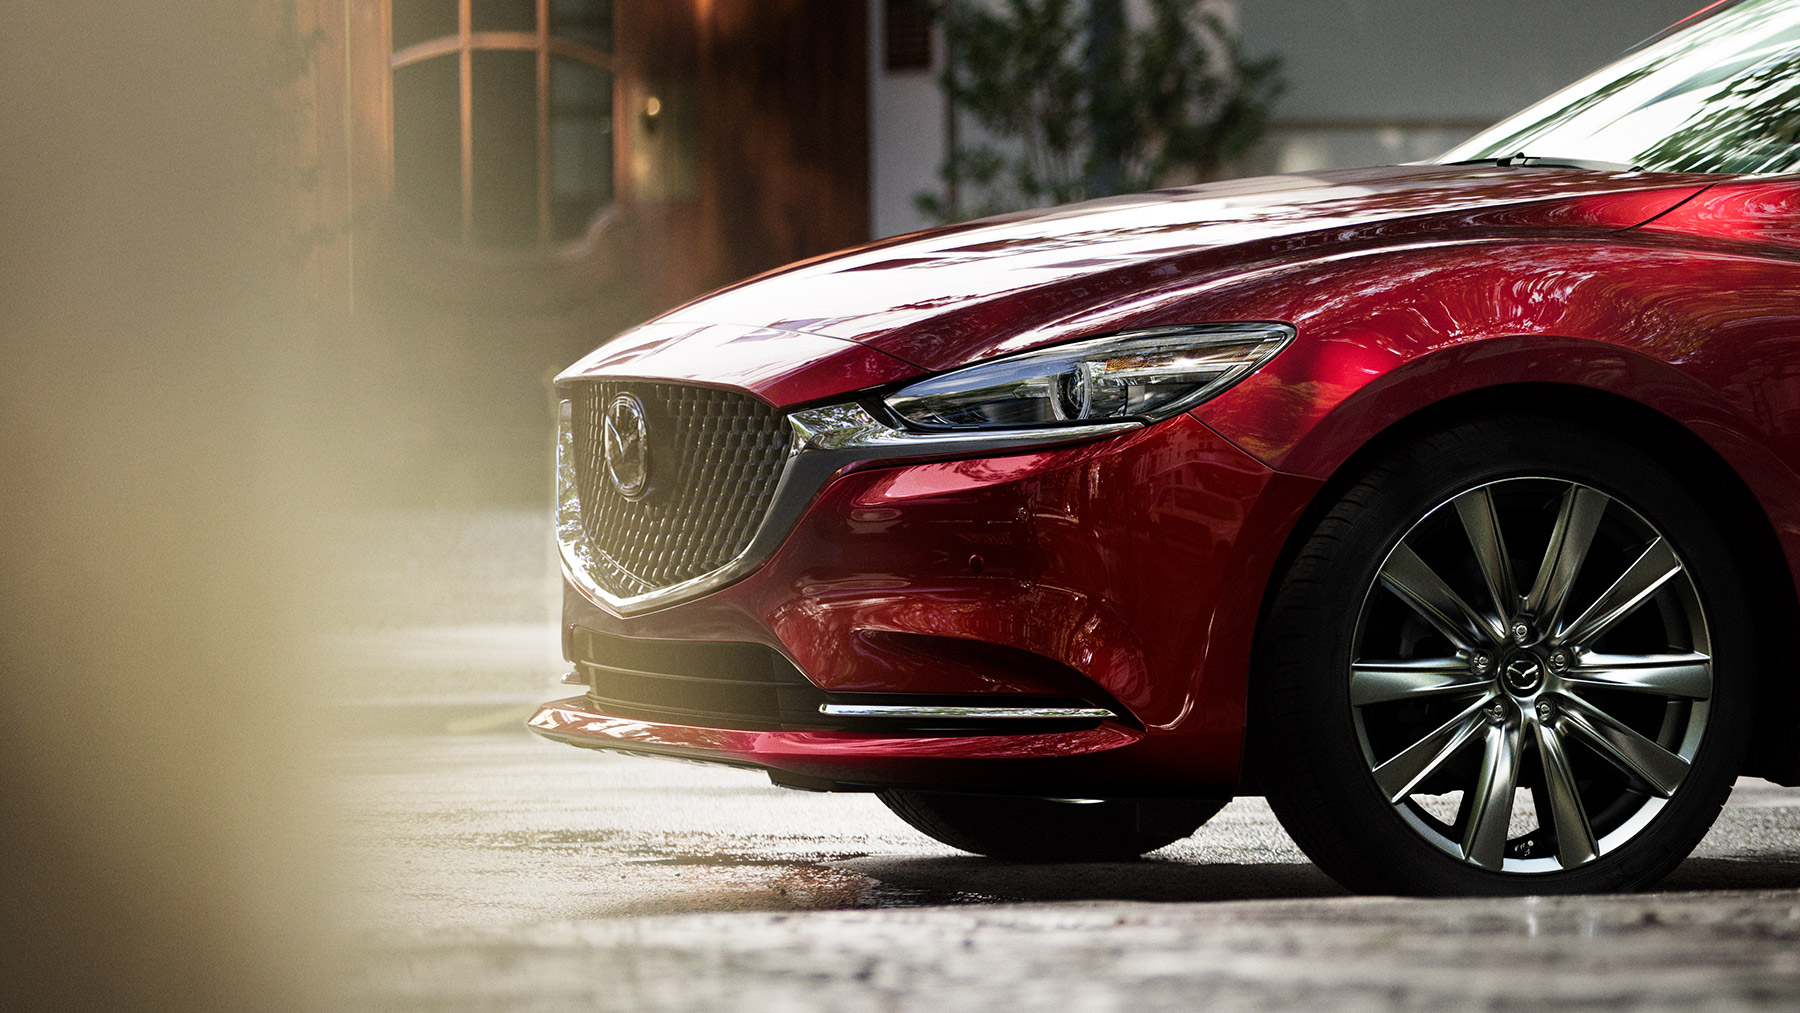 2019 Mazda6 Leasing near Washington, DC